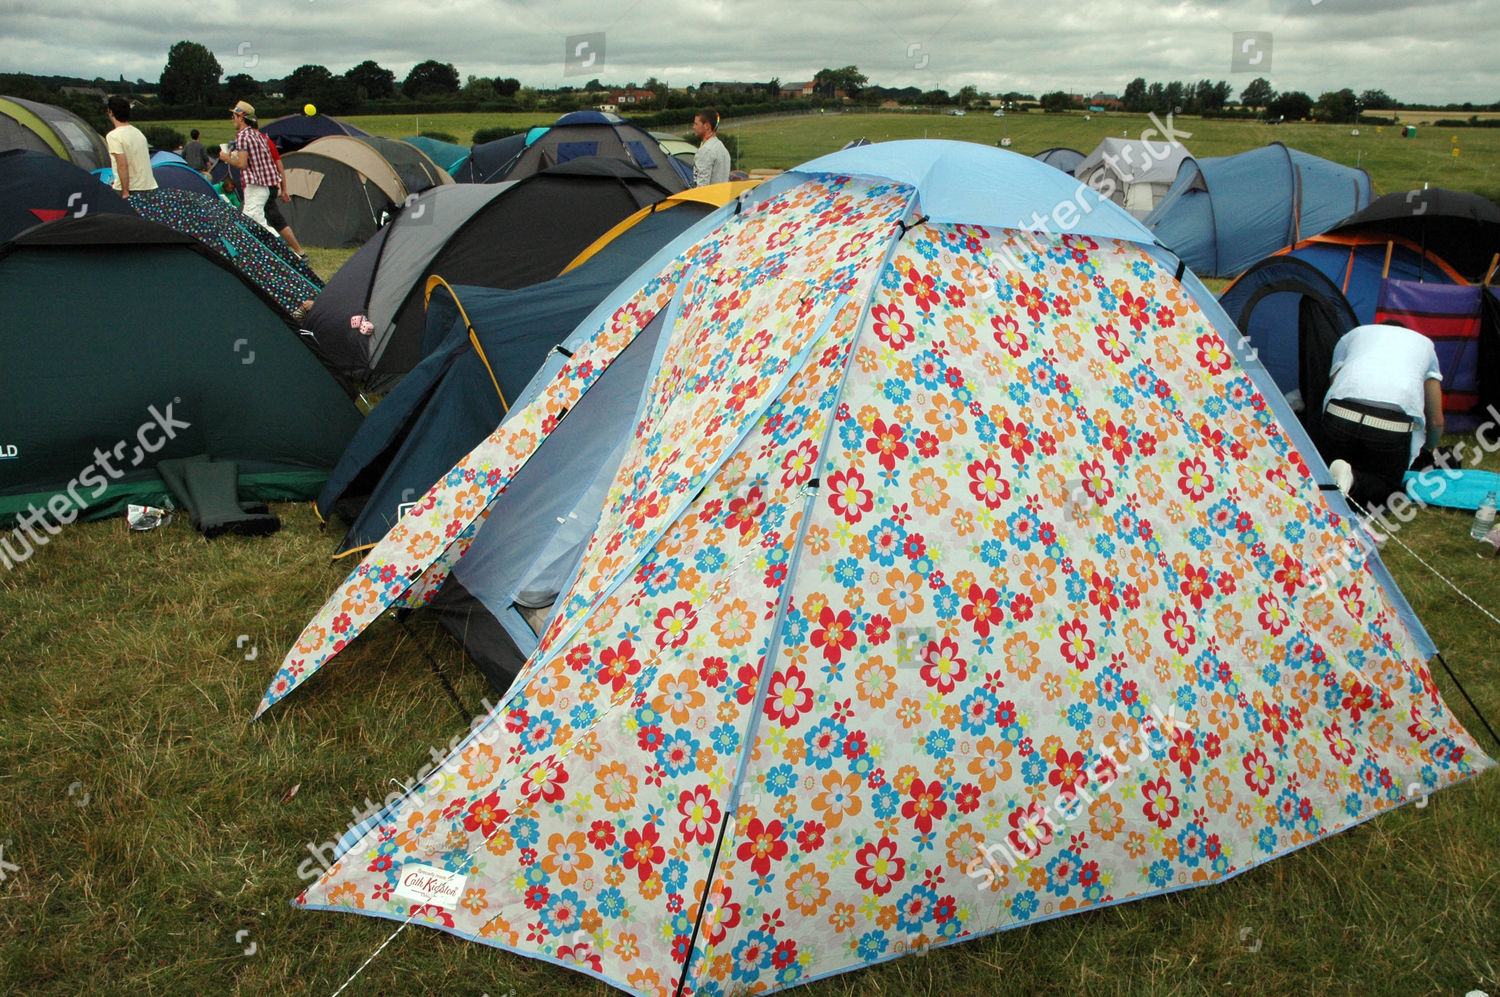 Stock photo of Virgin Mobile V Festival Hylands Park Chelmsford Essex Britain & Pictures show Camp Site Festival Goers Cath Kidston Editorial Stock ...